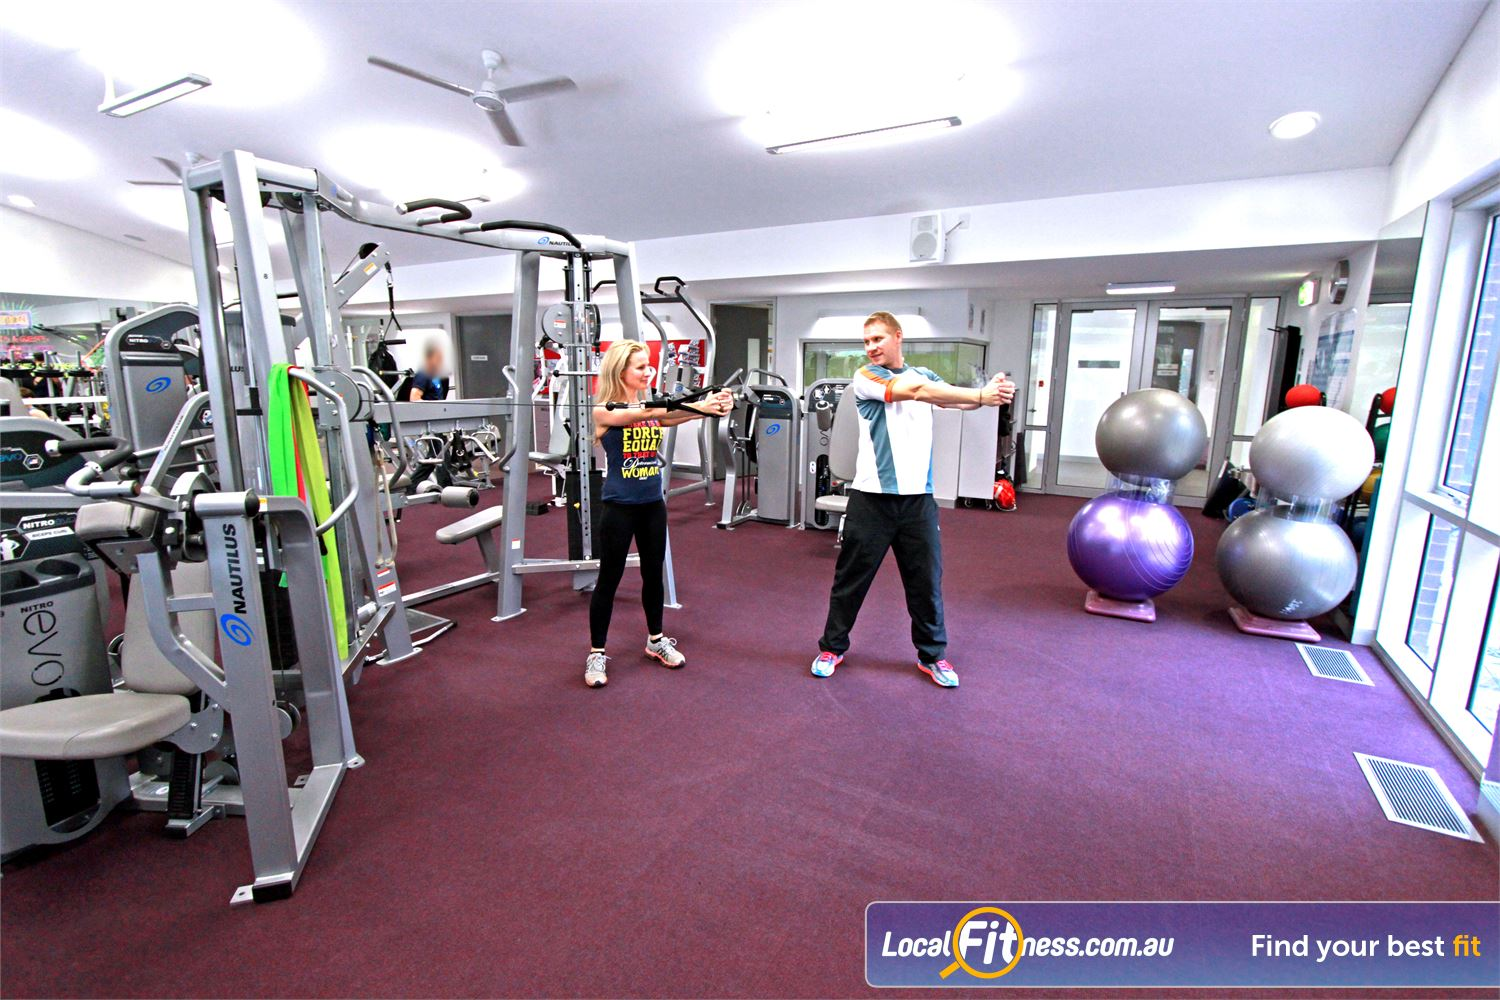 Monbulk Aquatic Centre Near Silvan Monbulk personal trainers are qualified and will monitor your form.